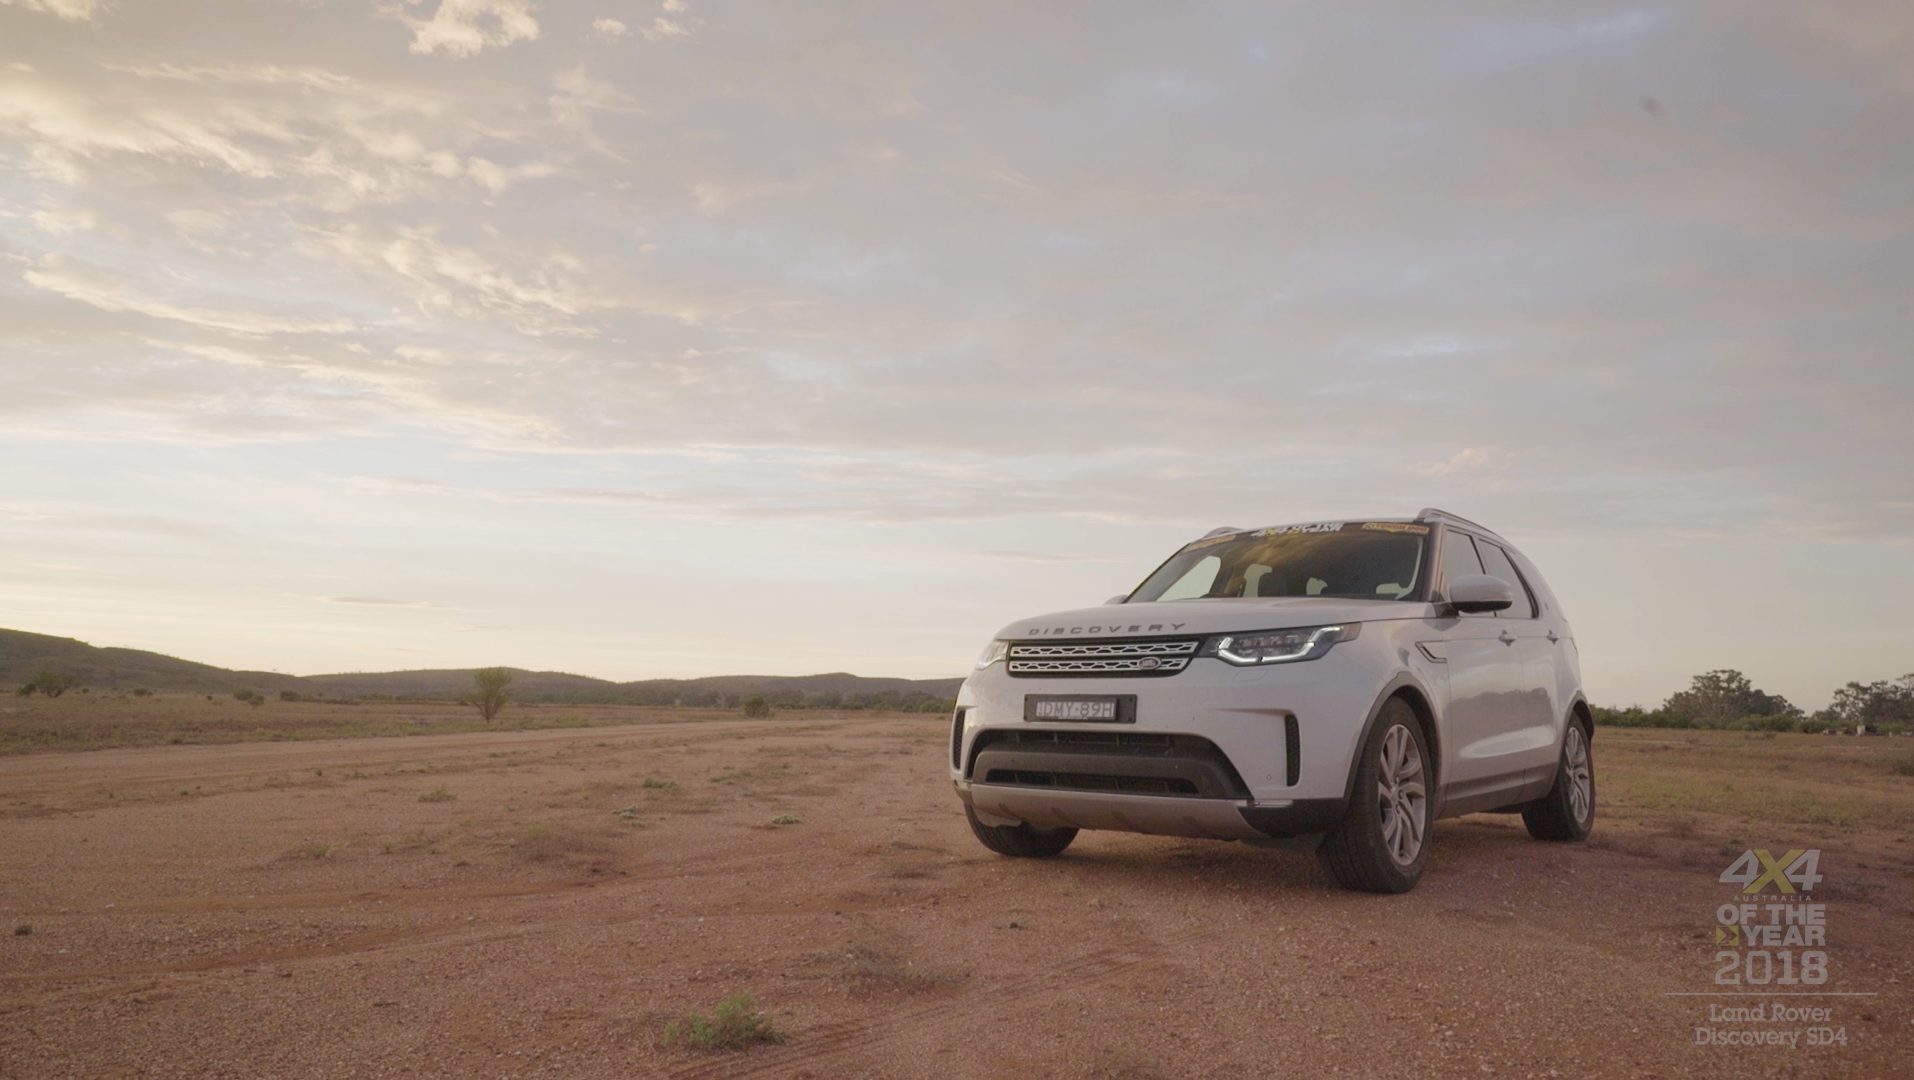 4X4 of the Year 2018 Lnd Rover Discovery SD4, teaser.